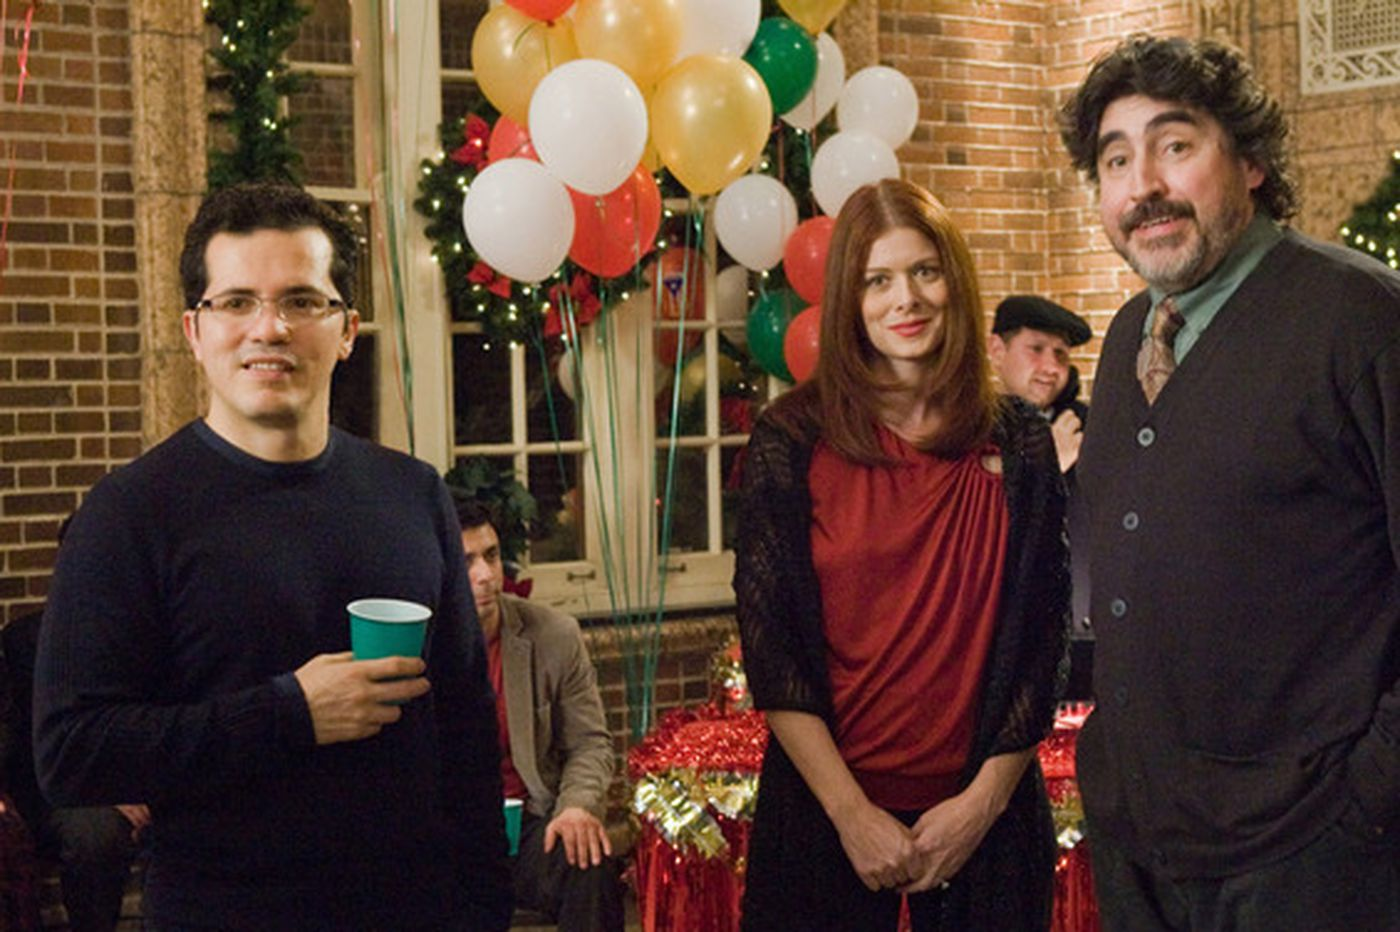 Christmas flick is 'Nothing' new